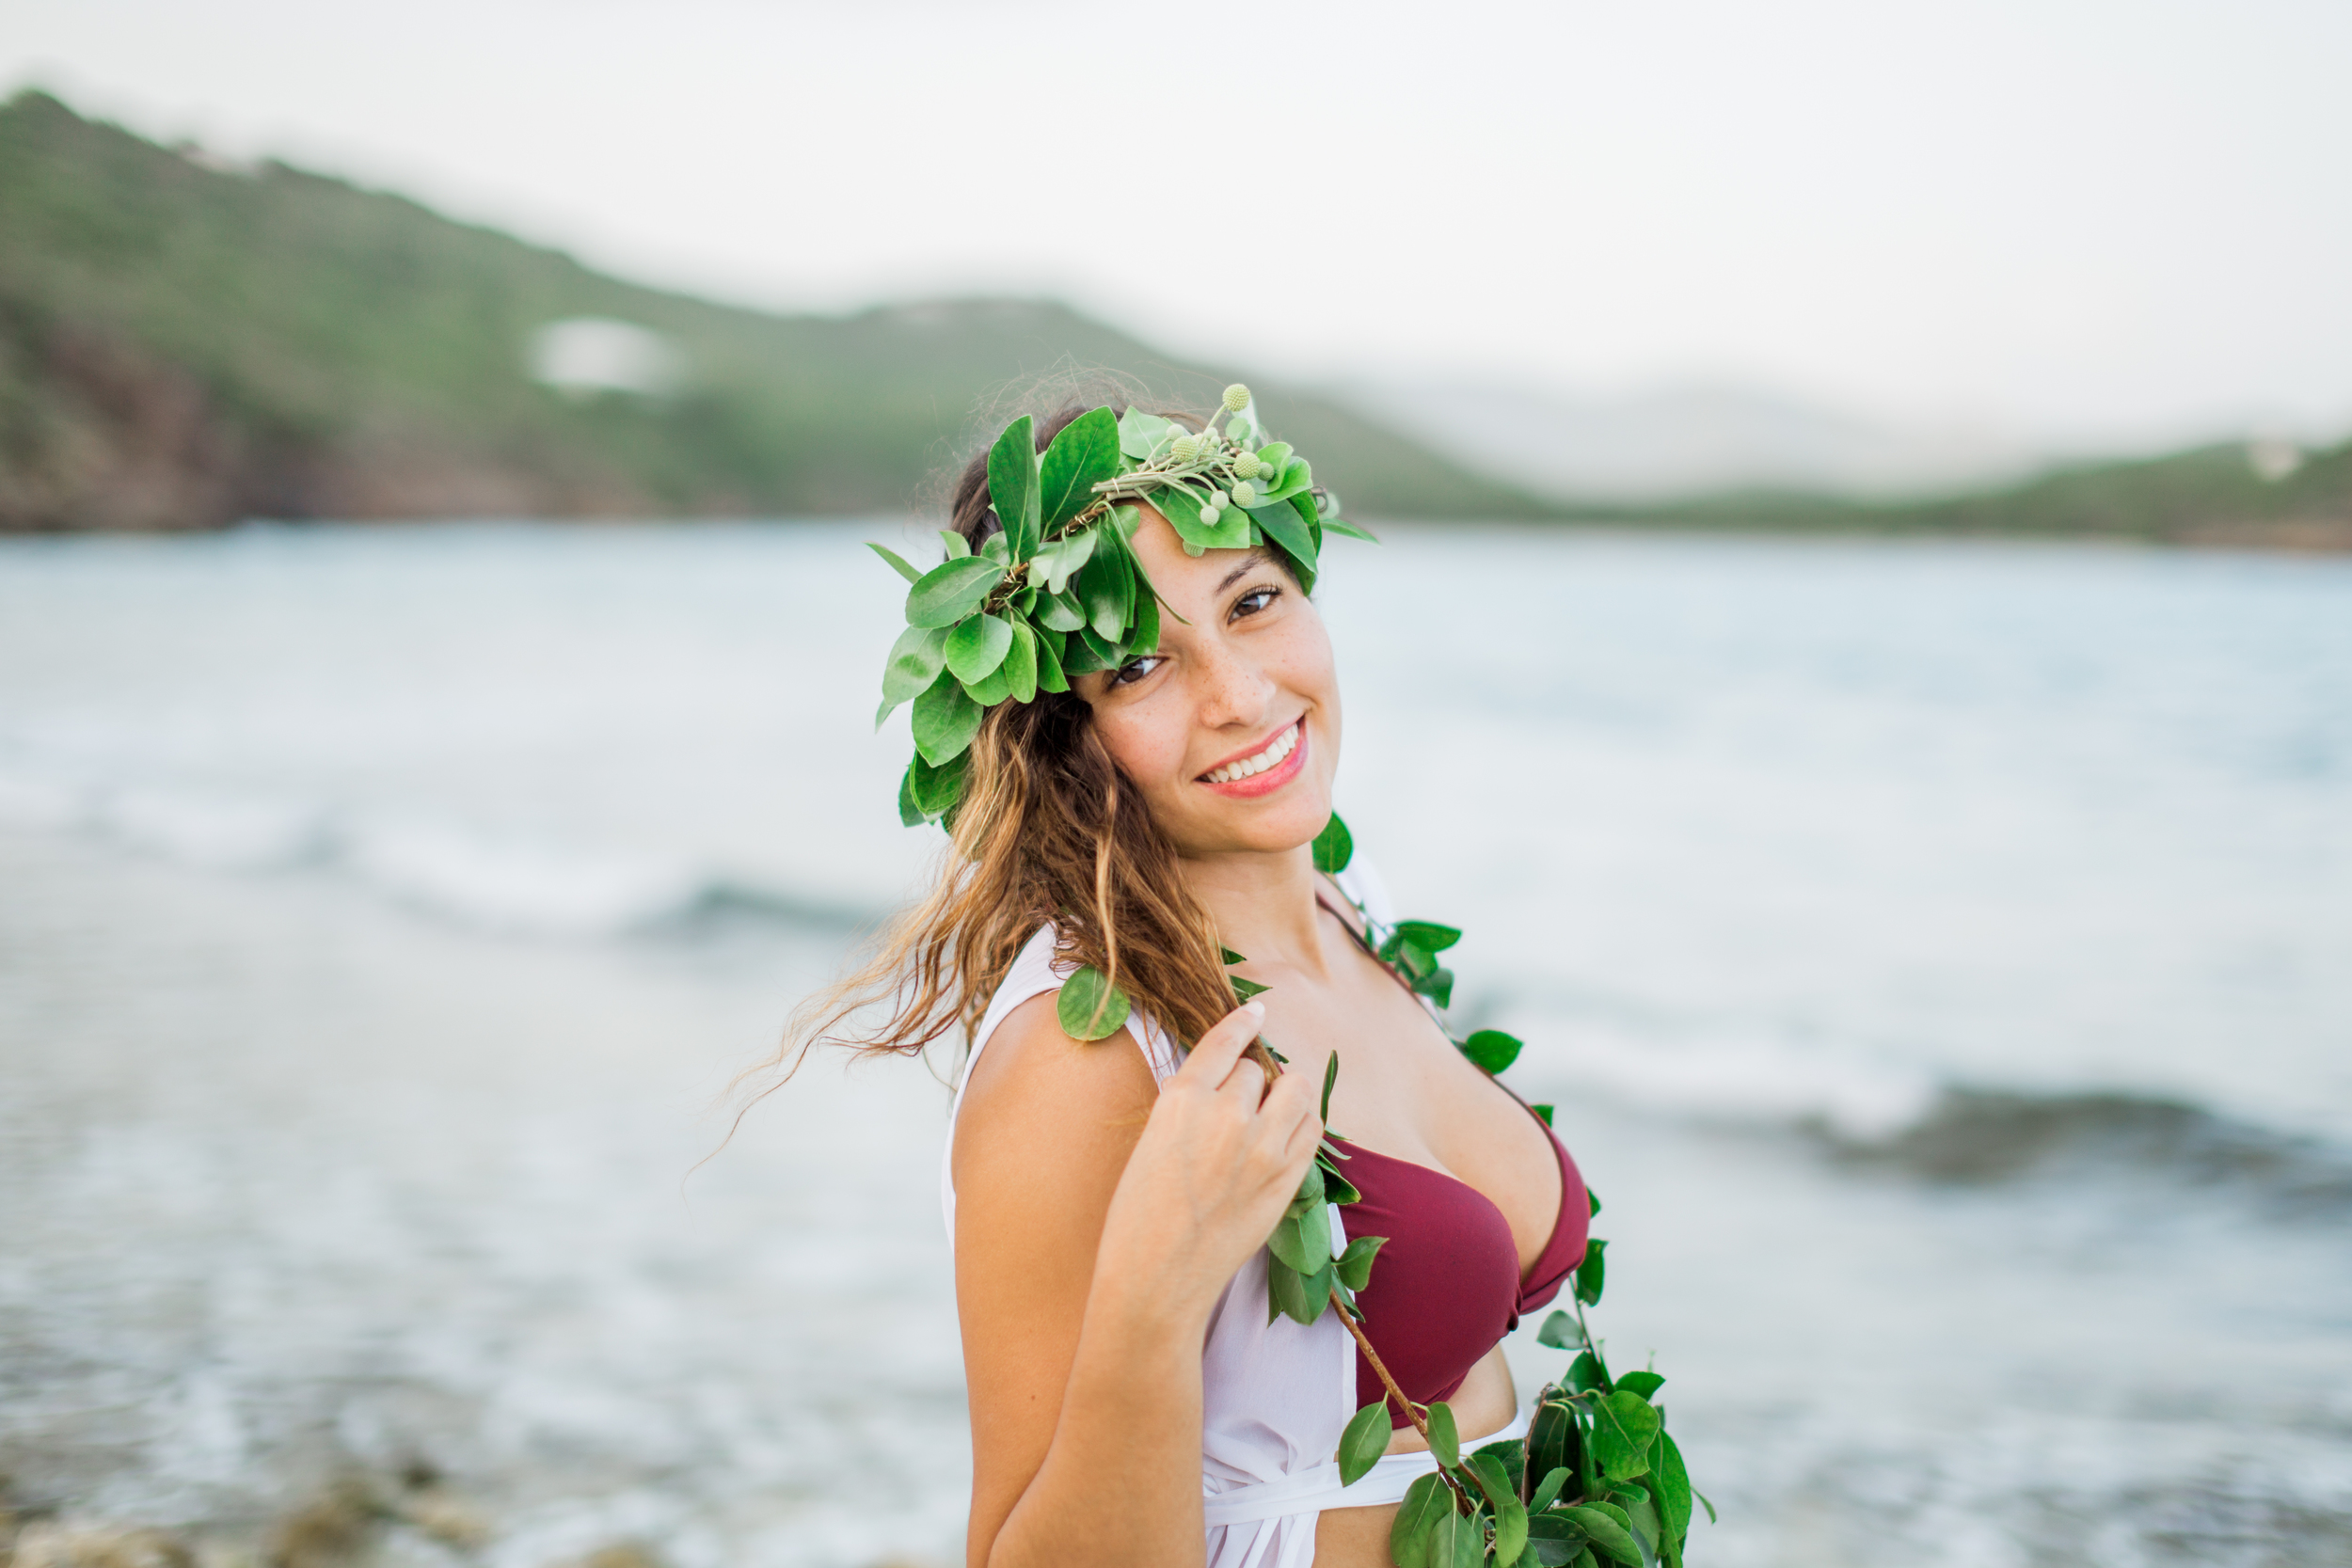 usvi st. thomas, water island tropical beach engagement photography